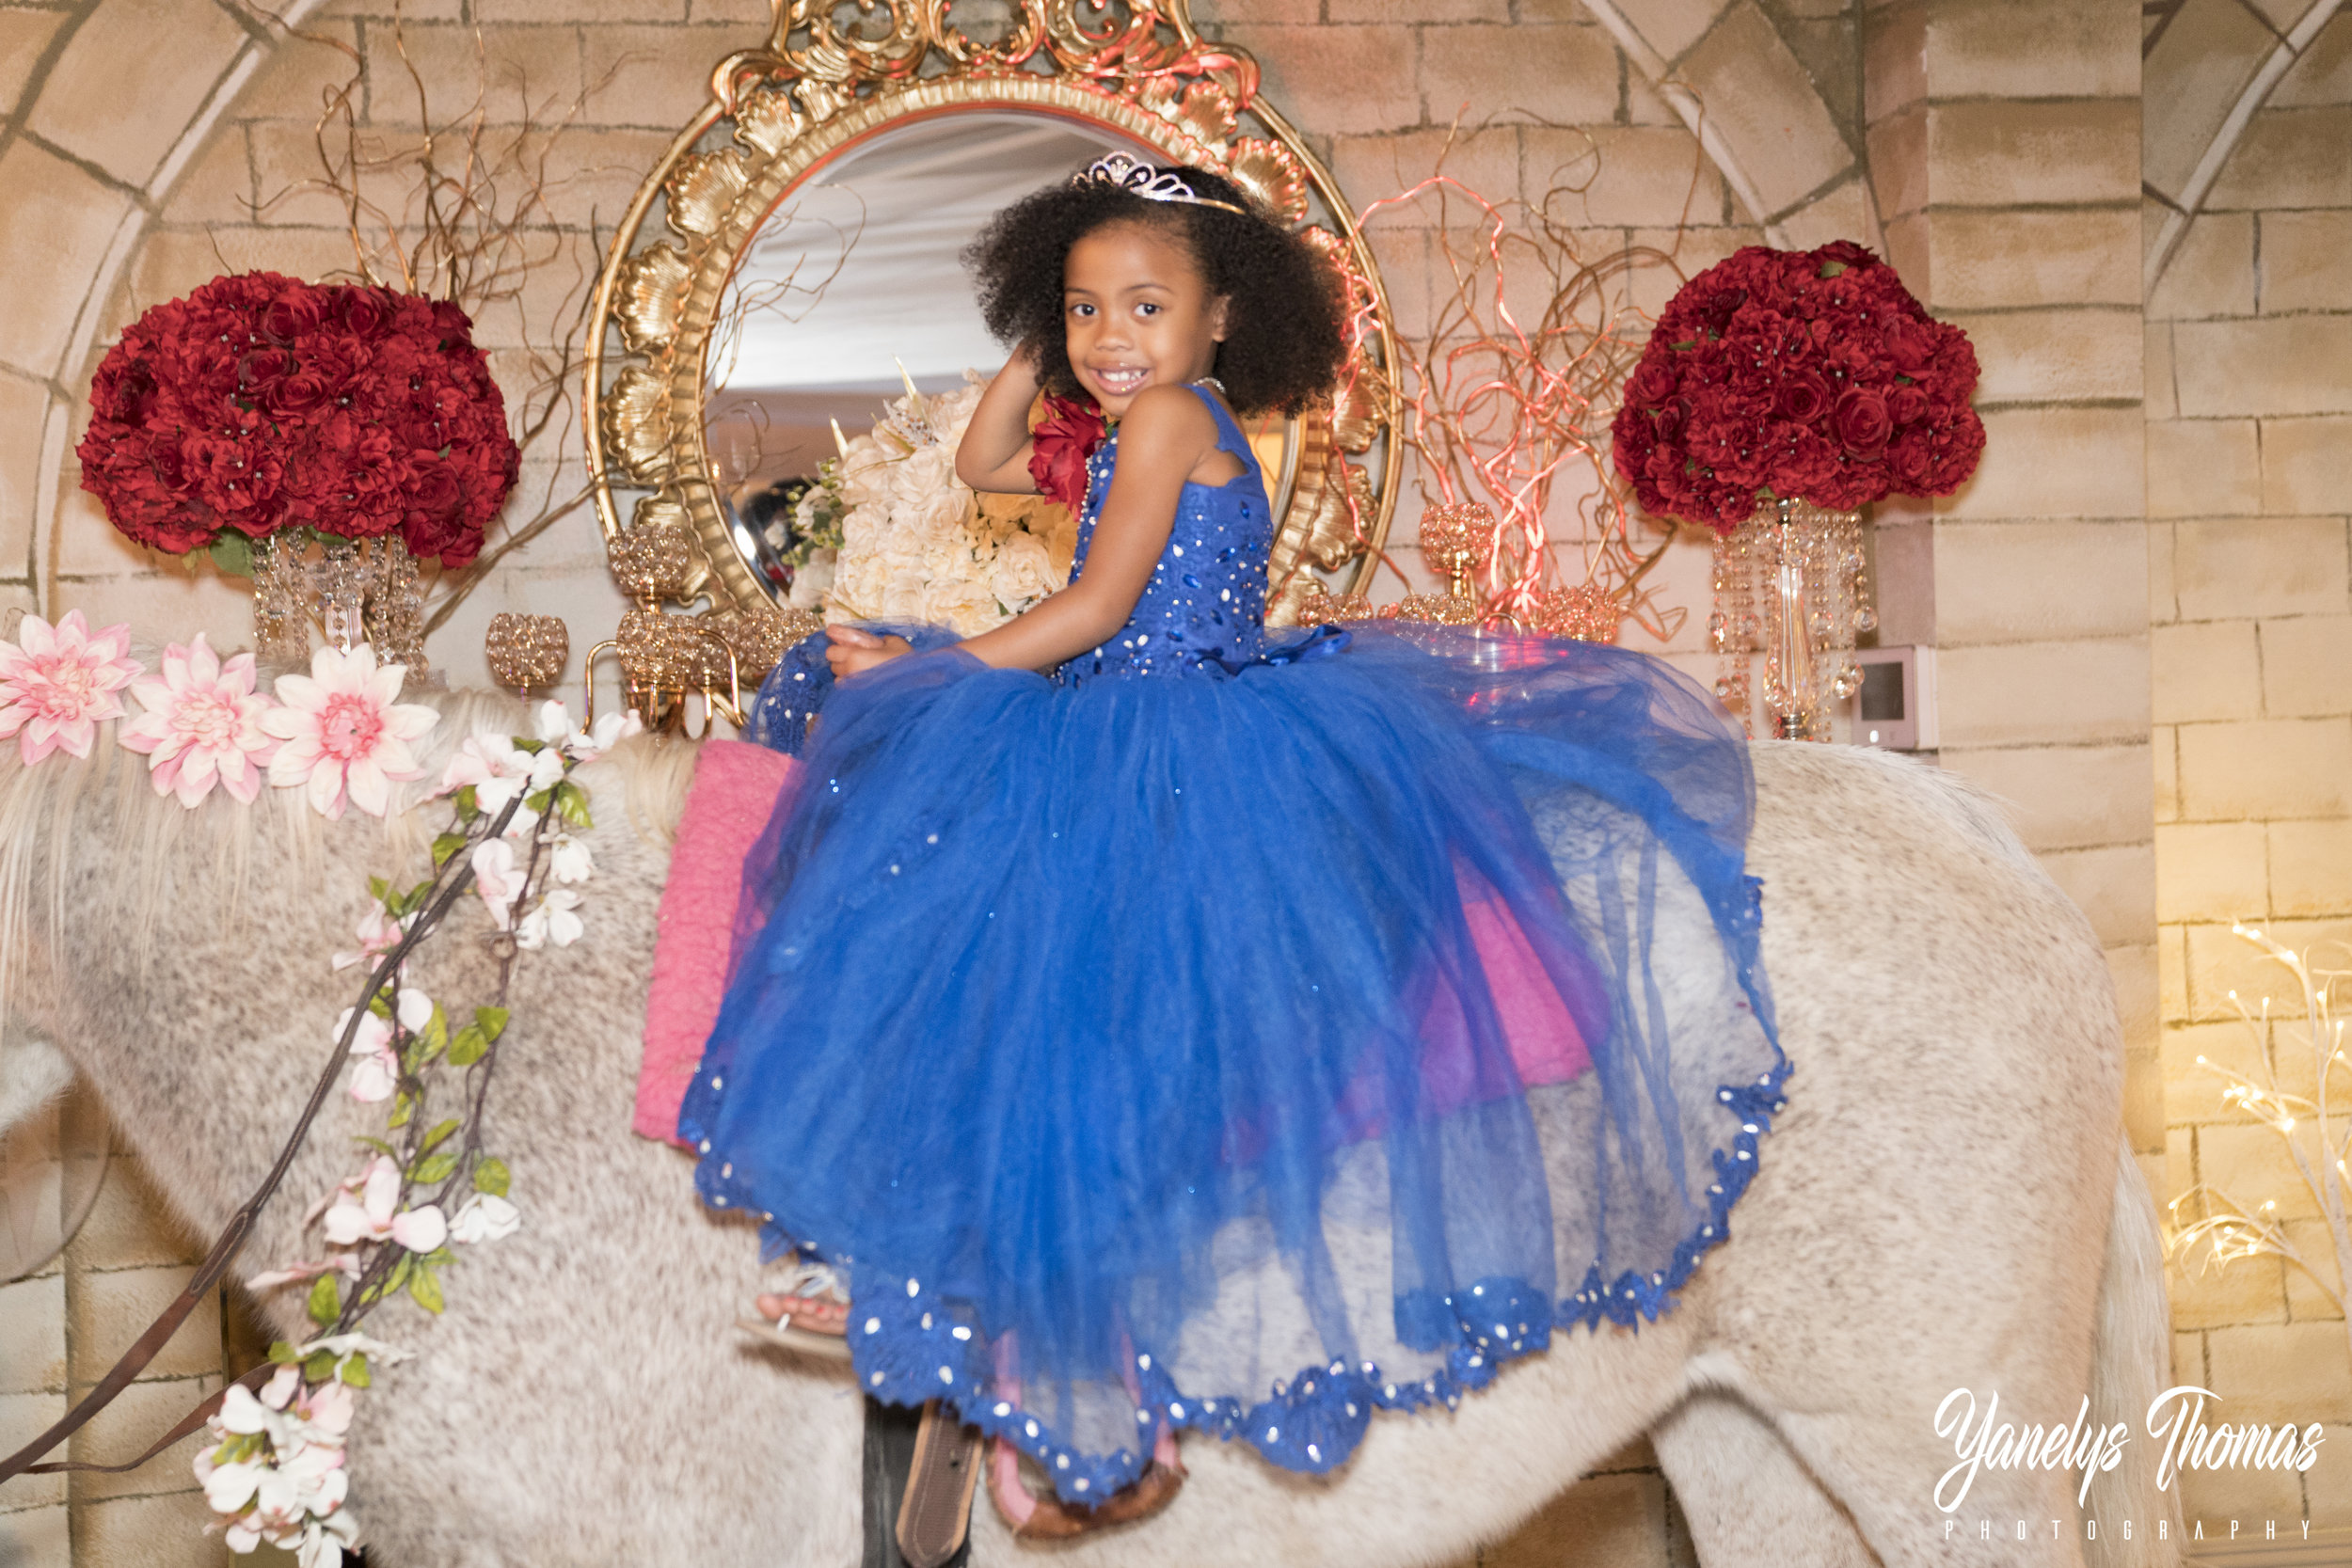 This little princess had the best birthday ever......  Her Daddy came to Sunset Castle looking for the perfect venue for his little girls 5th Birthday. The guest arrived early to the Castle located in Henderson,  carrying presents and getting ready for her birthday surprise.